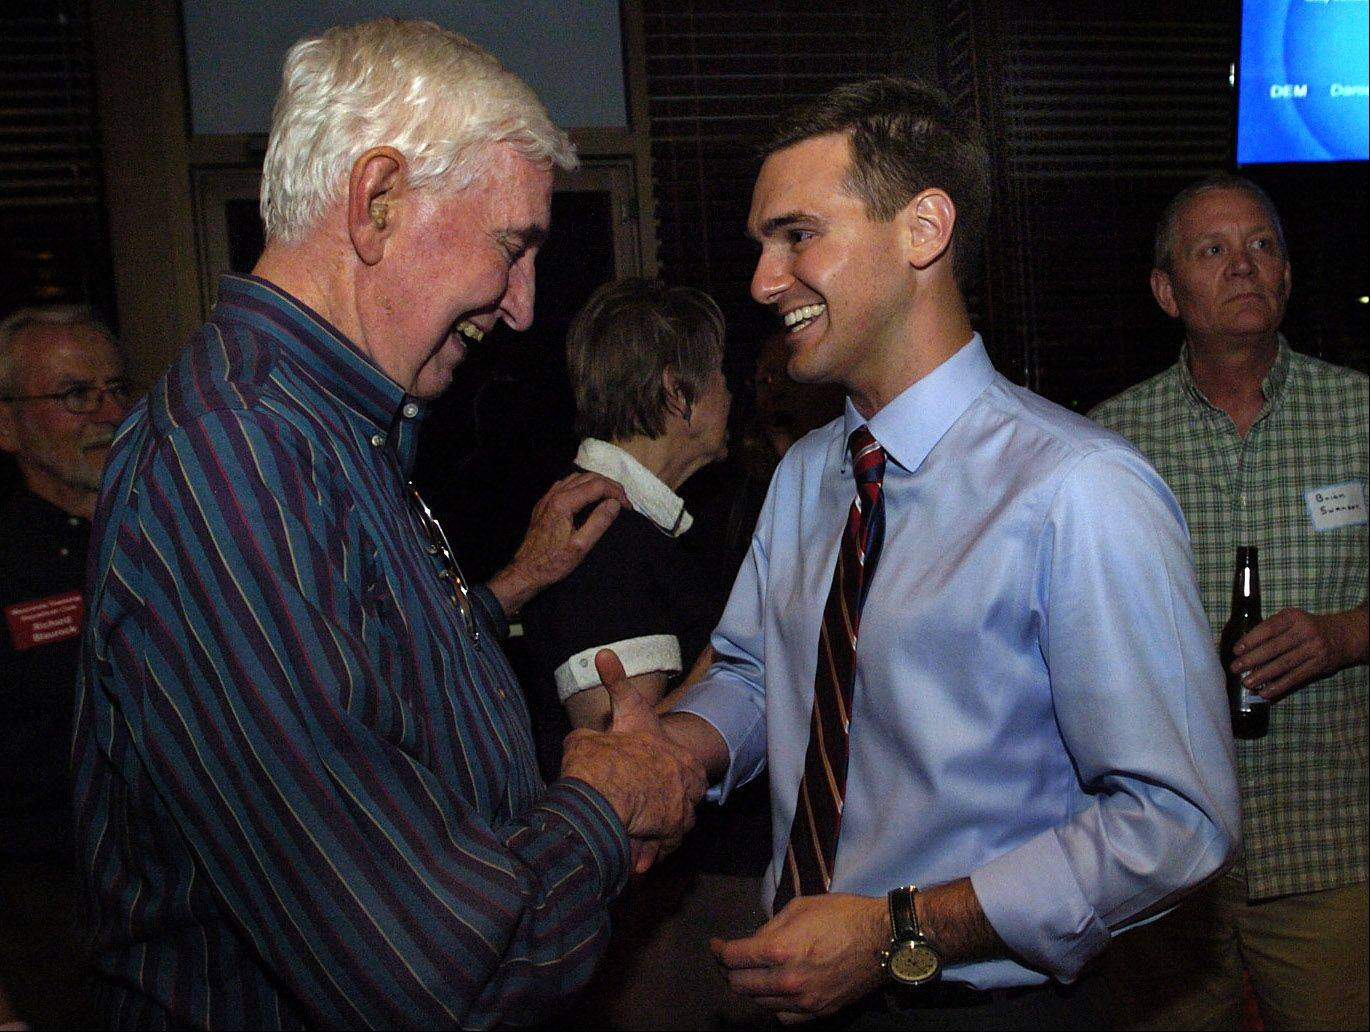 Lake Board District 17 candidate Nick Sauer, right, is congratulated by retiring Lake County Board member Steve Mountsier after claiming victory.